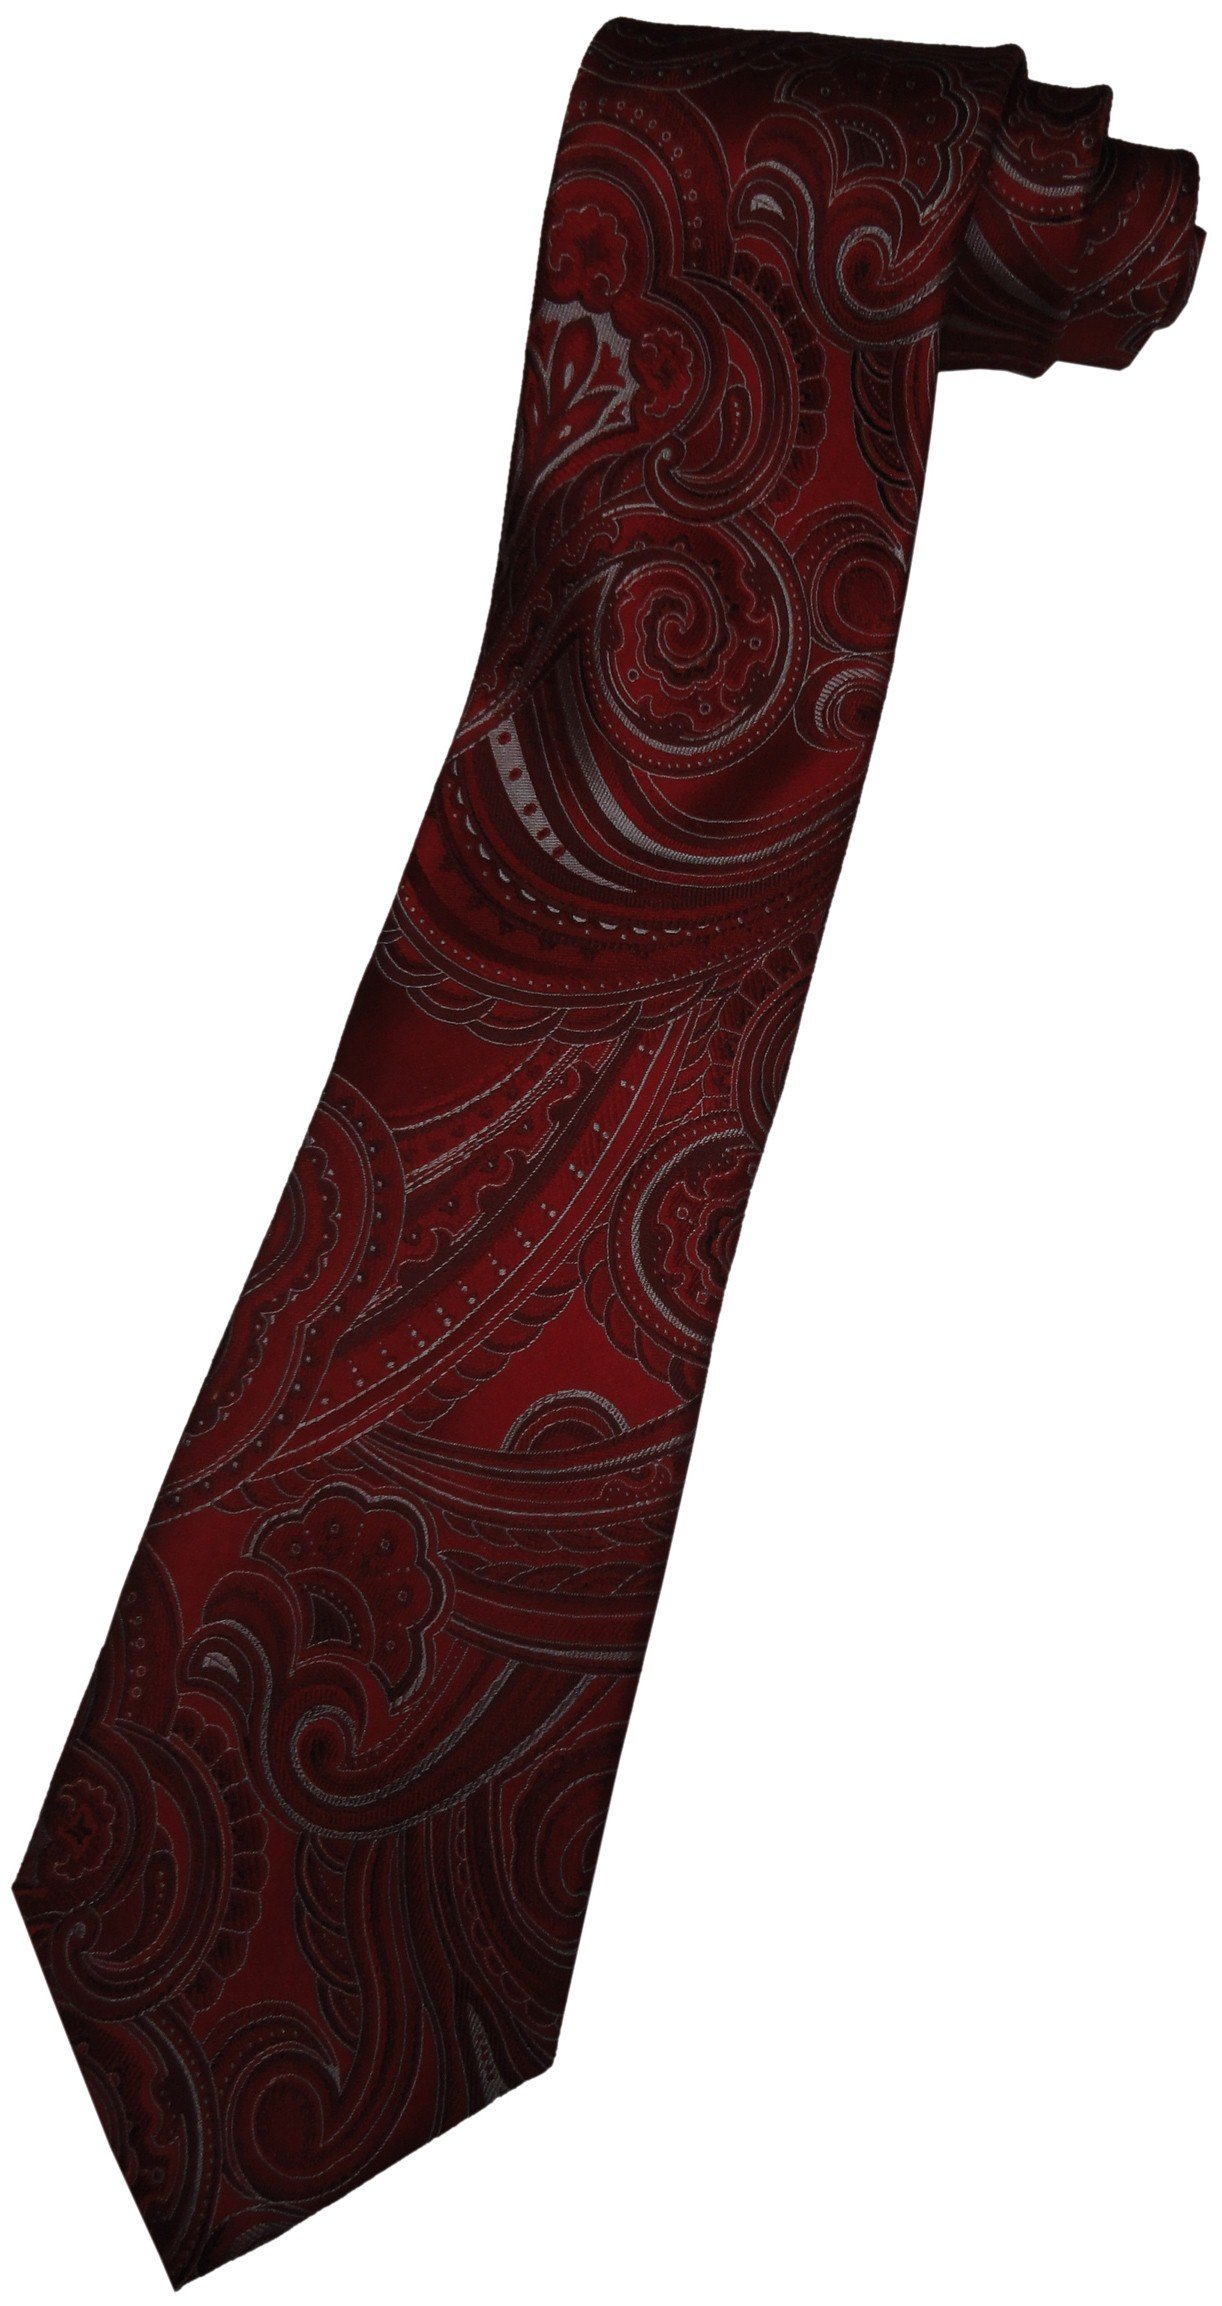 Donald Trump Signature Collection Neck Tie Red Paisley